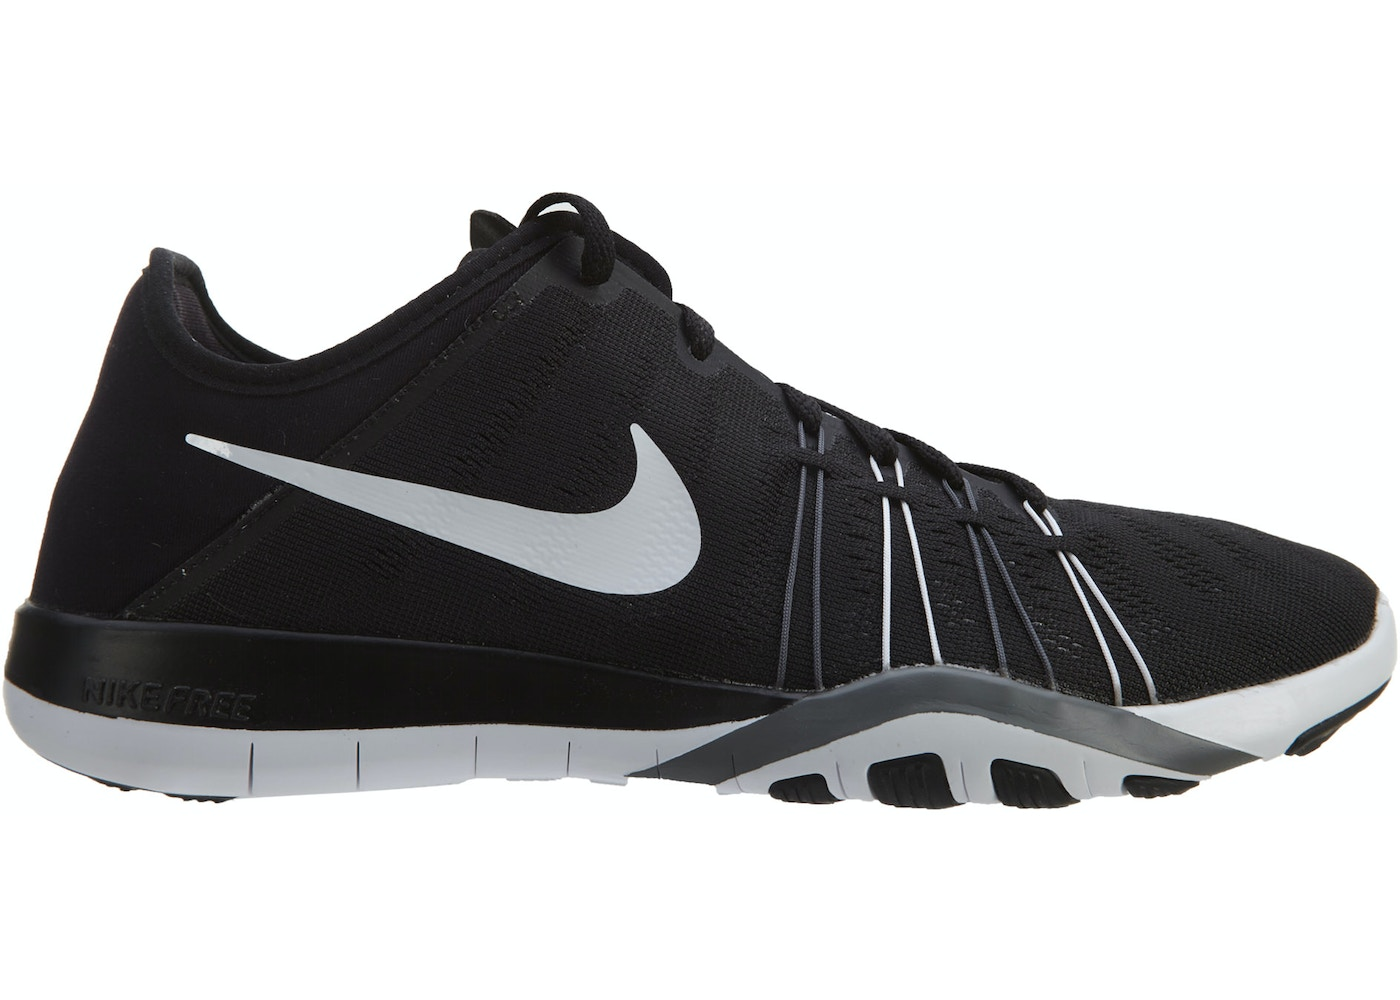 info for 37e9d 78b23 Sell. or Ask. Size --. View All Bids. Nike Free Tr 6 ...